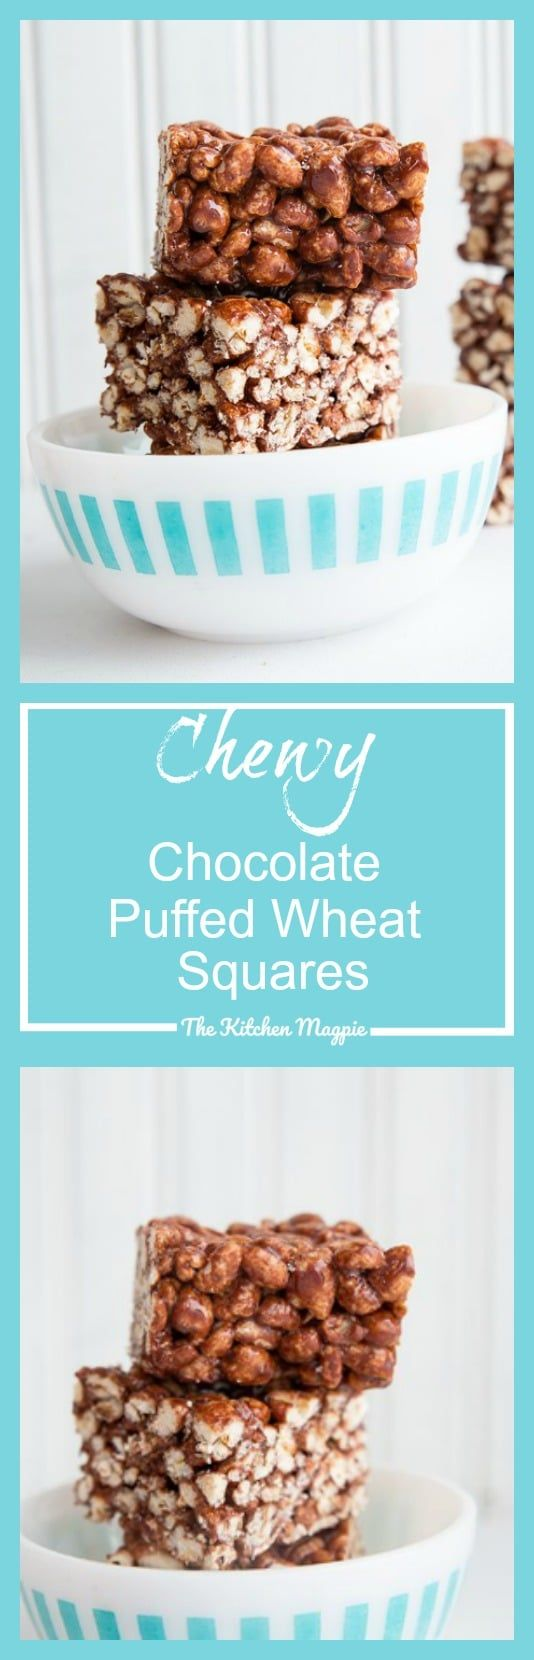 Chewy Chocolate Puffed Wheat Squares Recipe and Video - The Kitchen Magpie